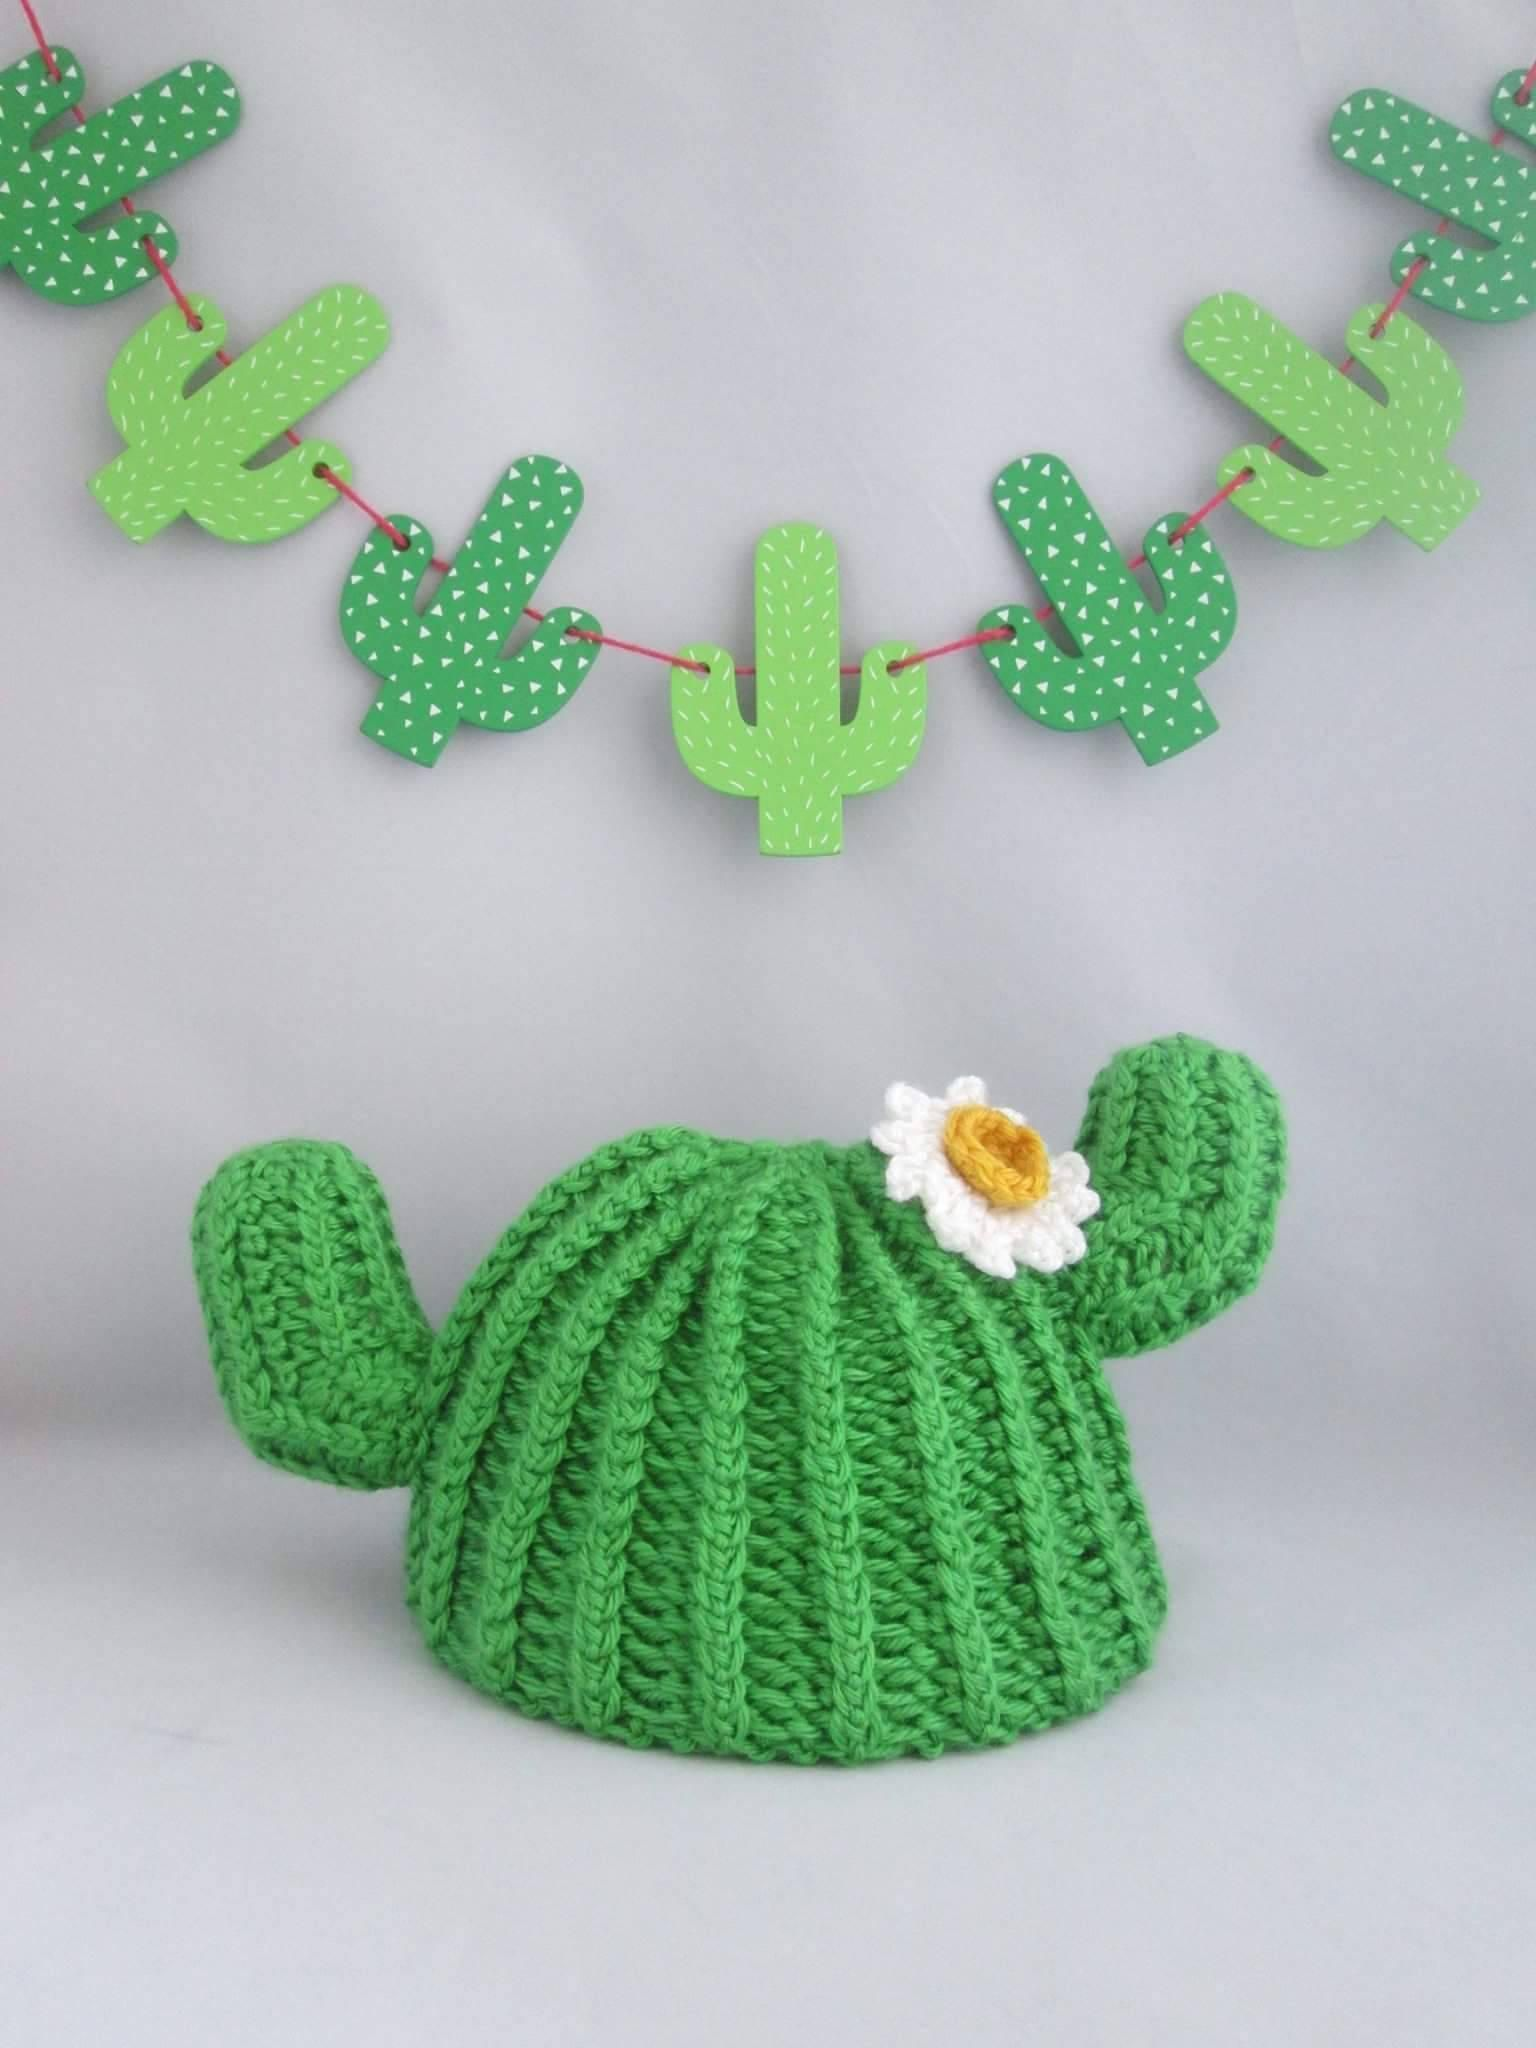 Handmade Crocheted Baby and Toddler s Cactus Novelty Hat  Cactus Baby Hat  Cactus Toddler Hat  Cactus Hat Novelty Kid s Hat Plant Beanie Hat by ... 6fea86507e8f